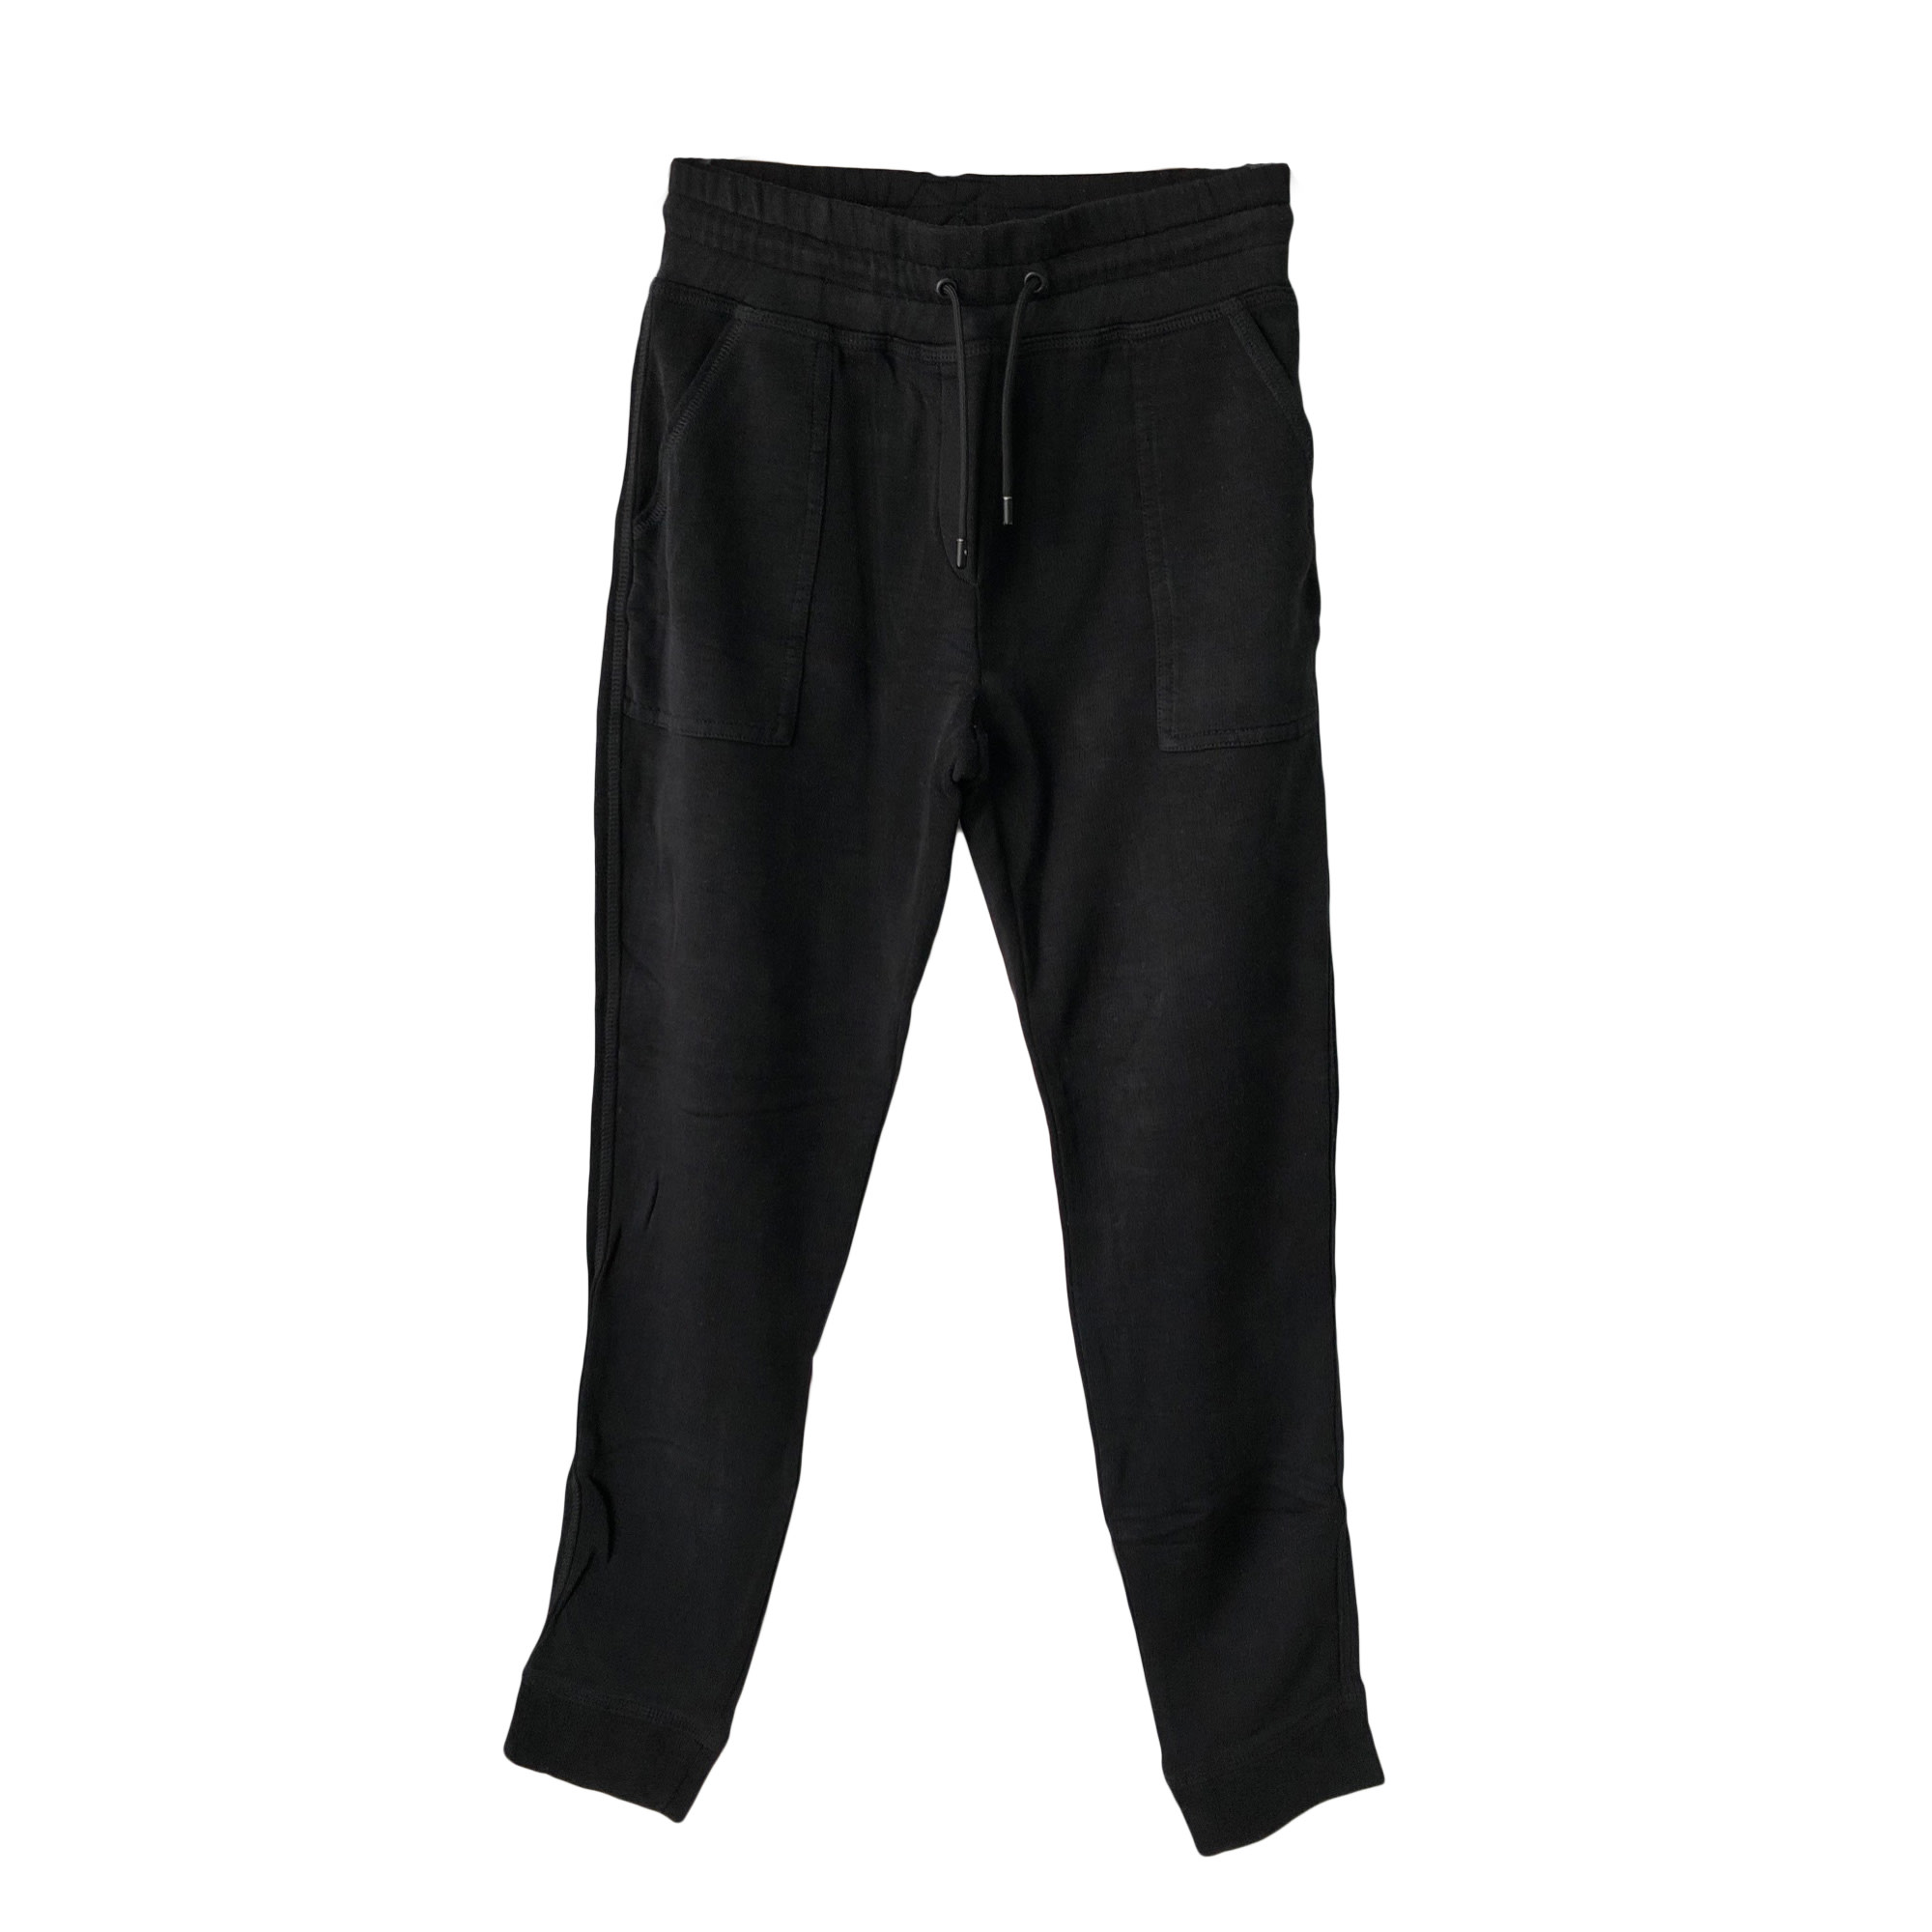 Pantalon slim, cigarette THE KOOPLES Noir